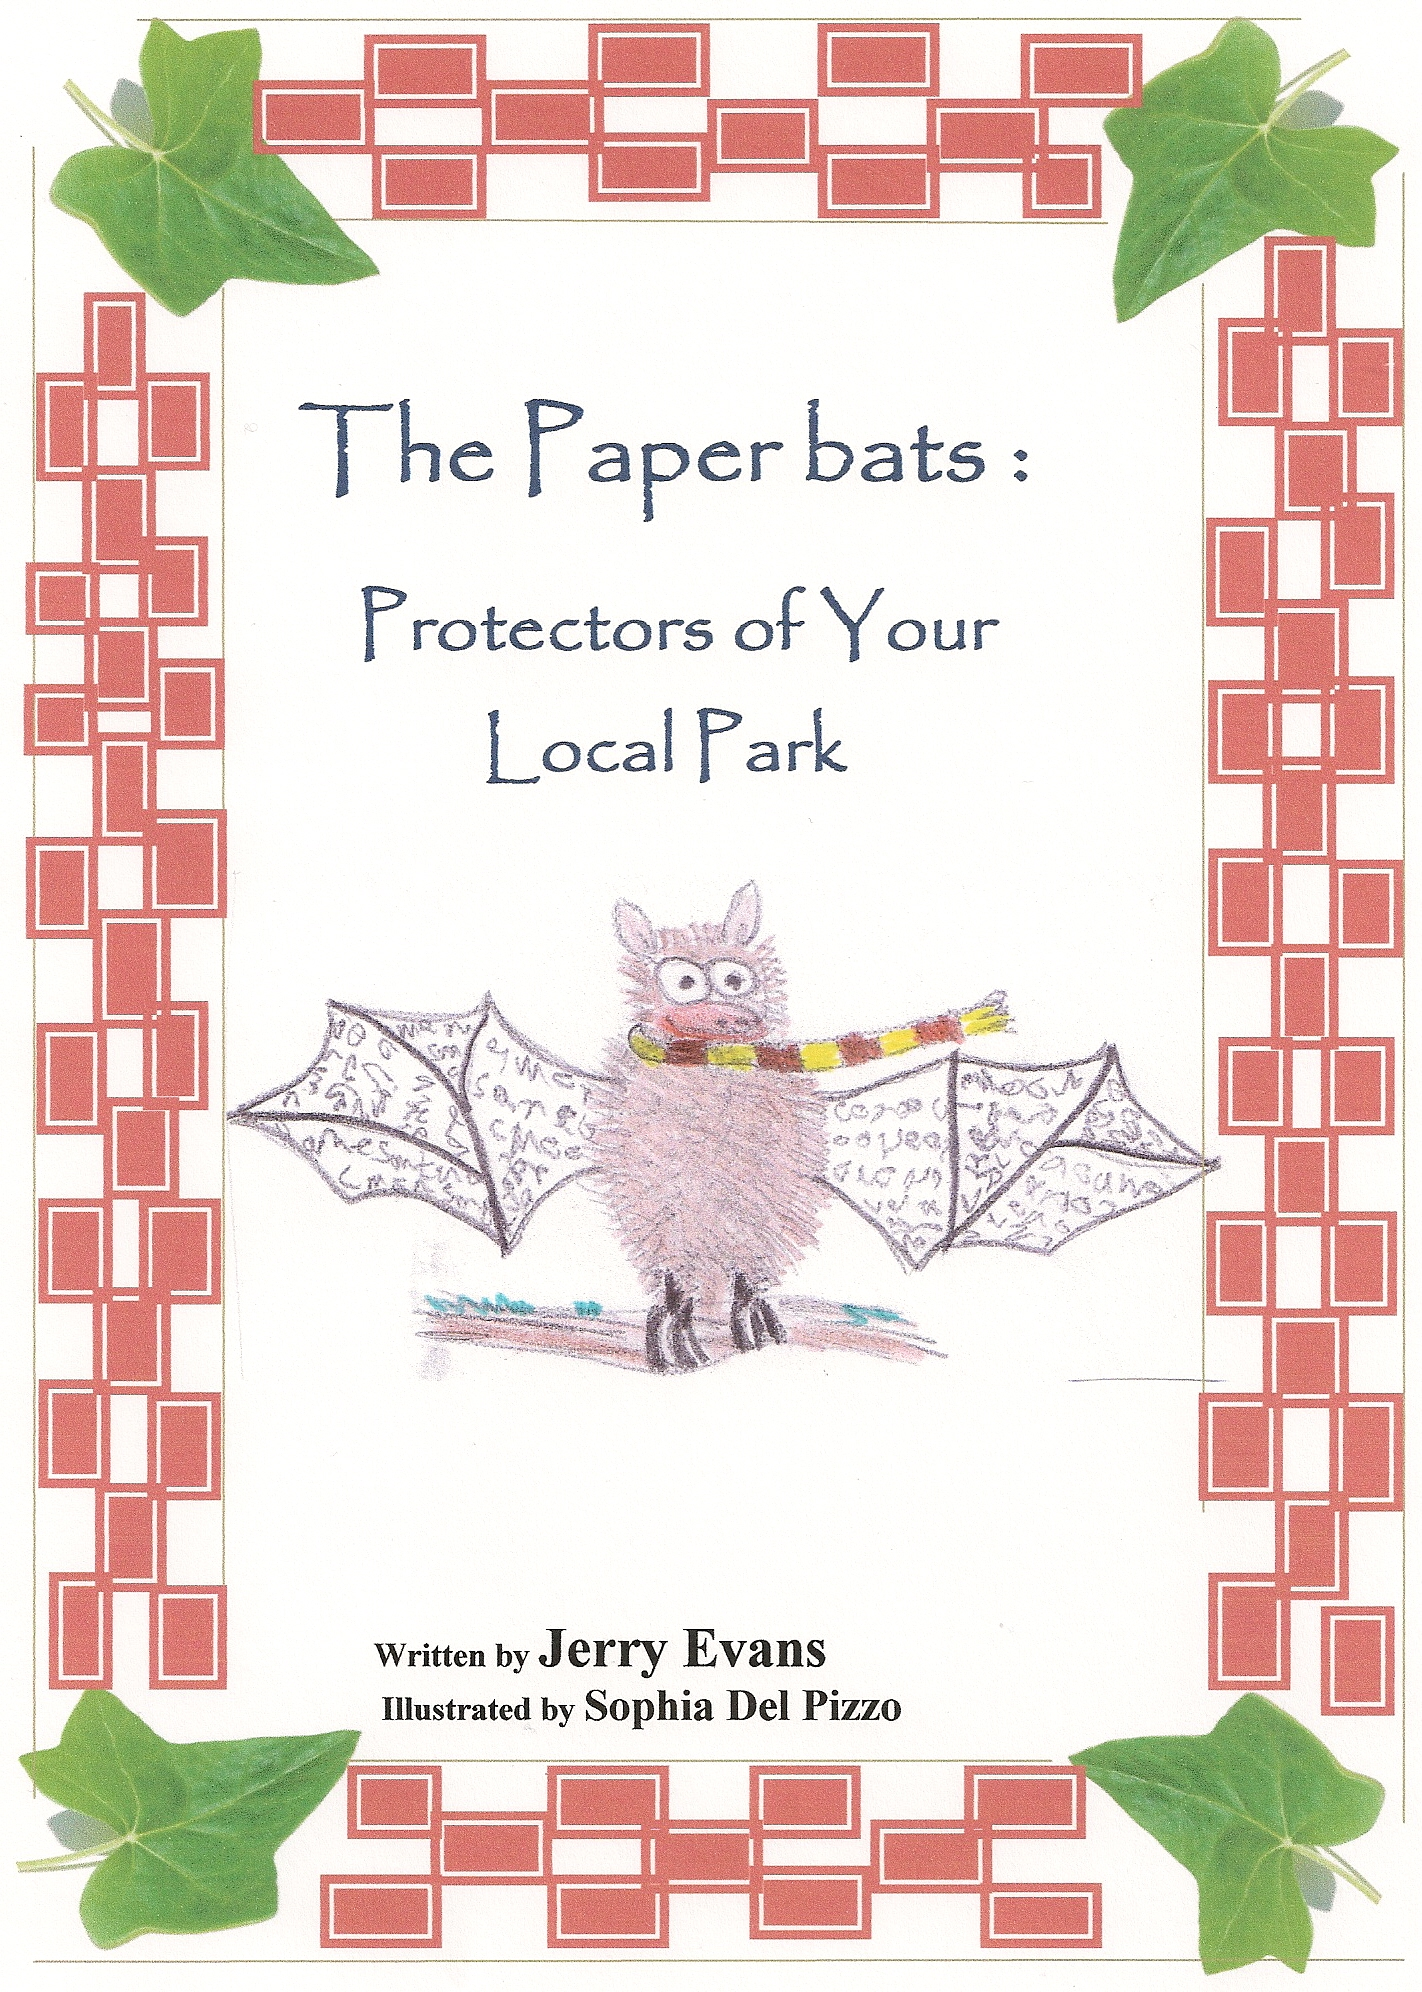 Paperbats 1: Protectors of your Local Park